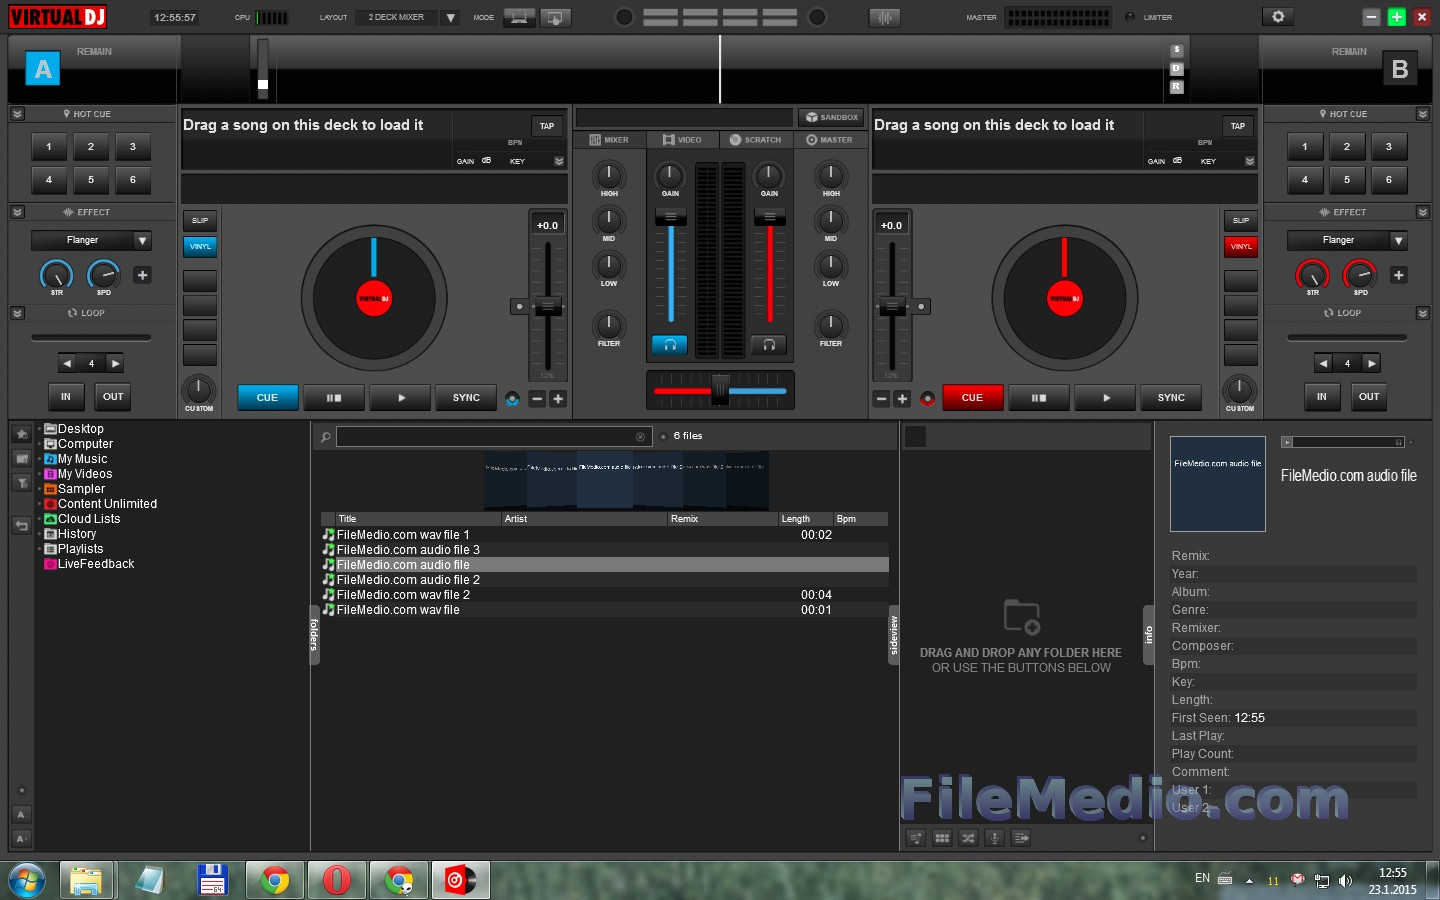 essayer virtual dj gratuit If you have misplaced your virtual dj le cd, then this guide is for you this guide will walk you through the steps to create a virtual dj account, and register your license code to receive the latest version of the virtual dj le software.